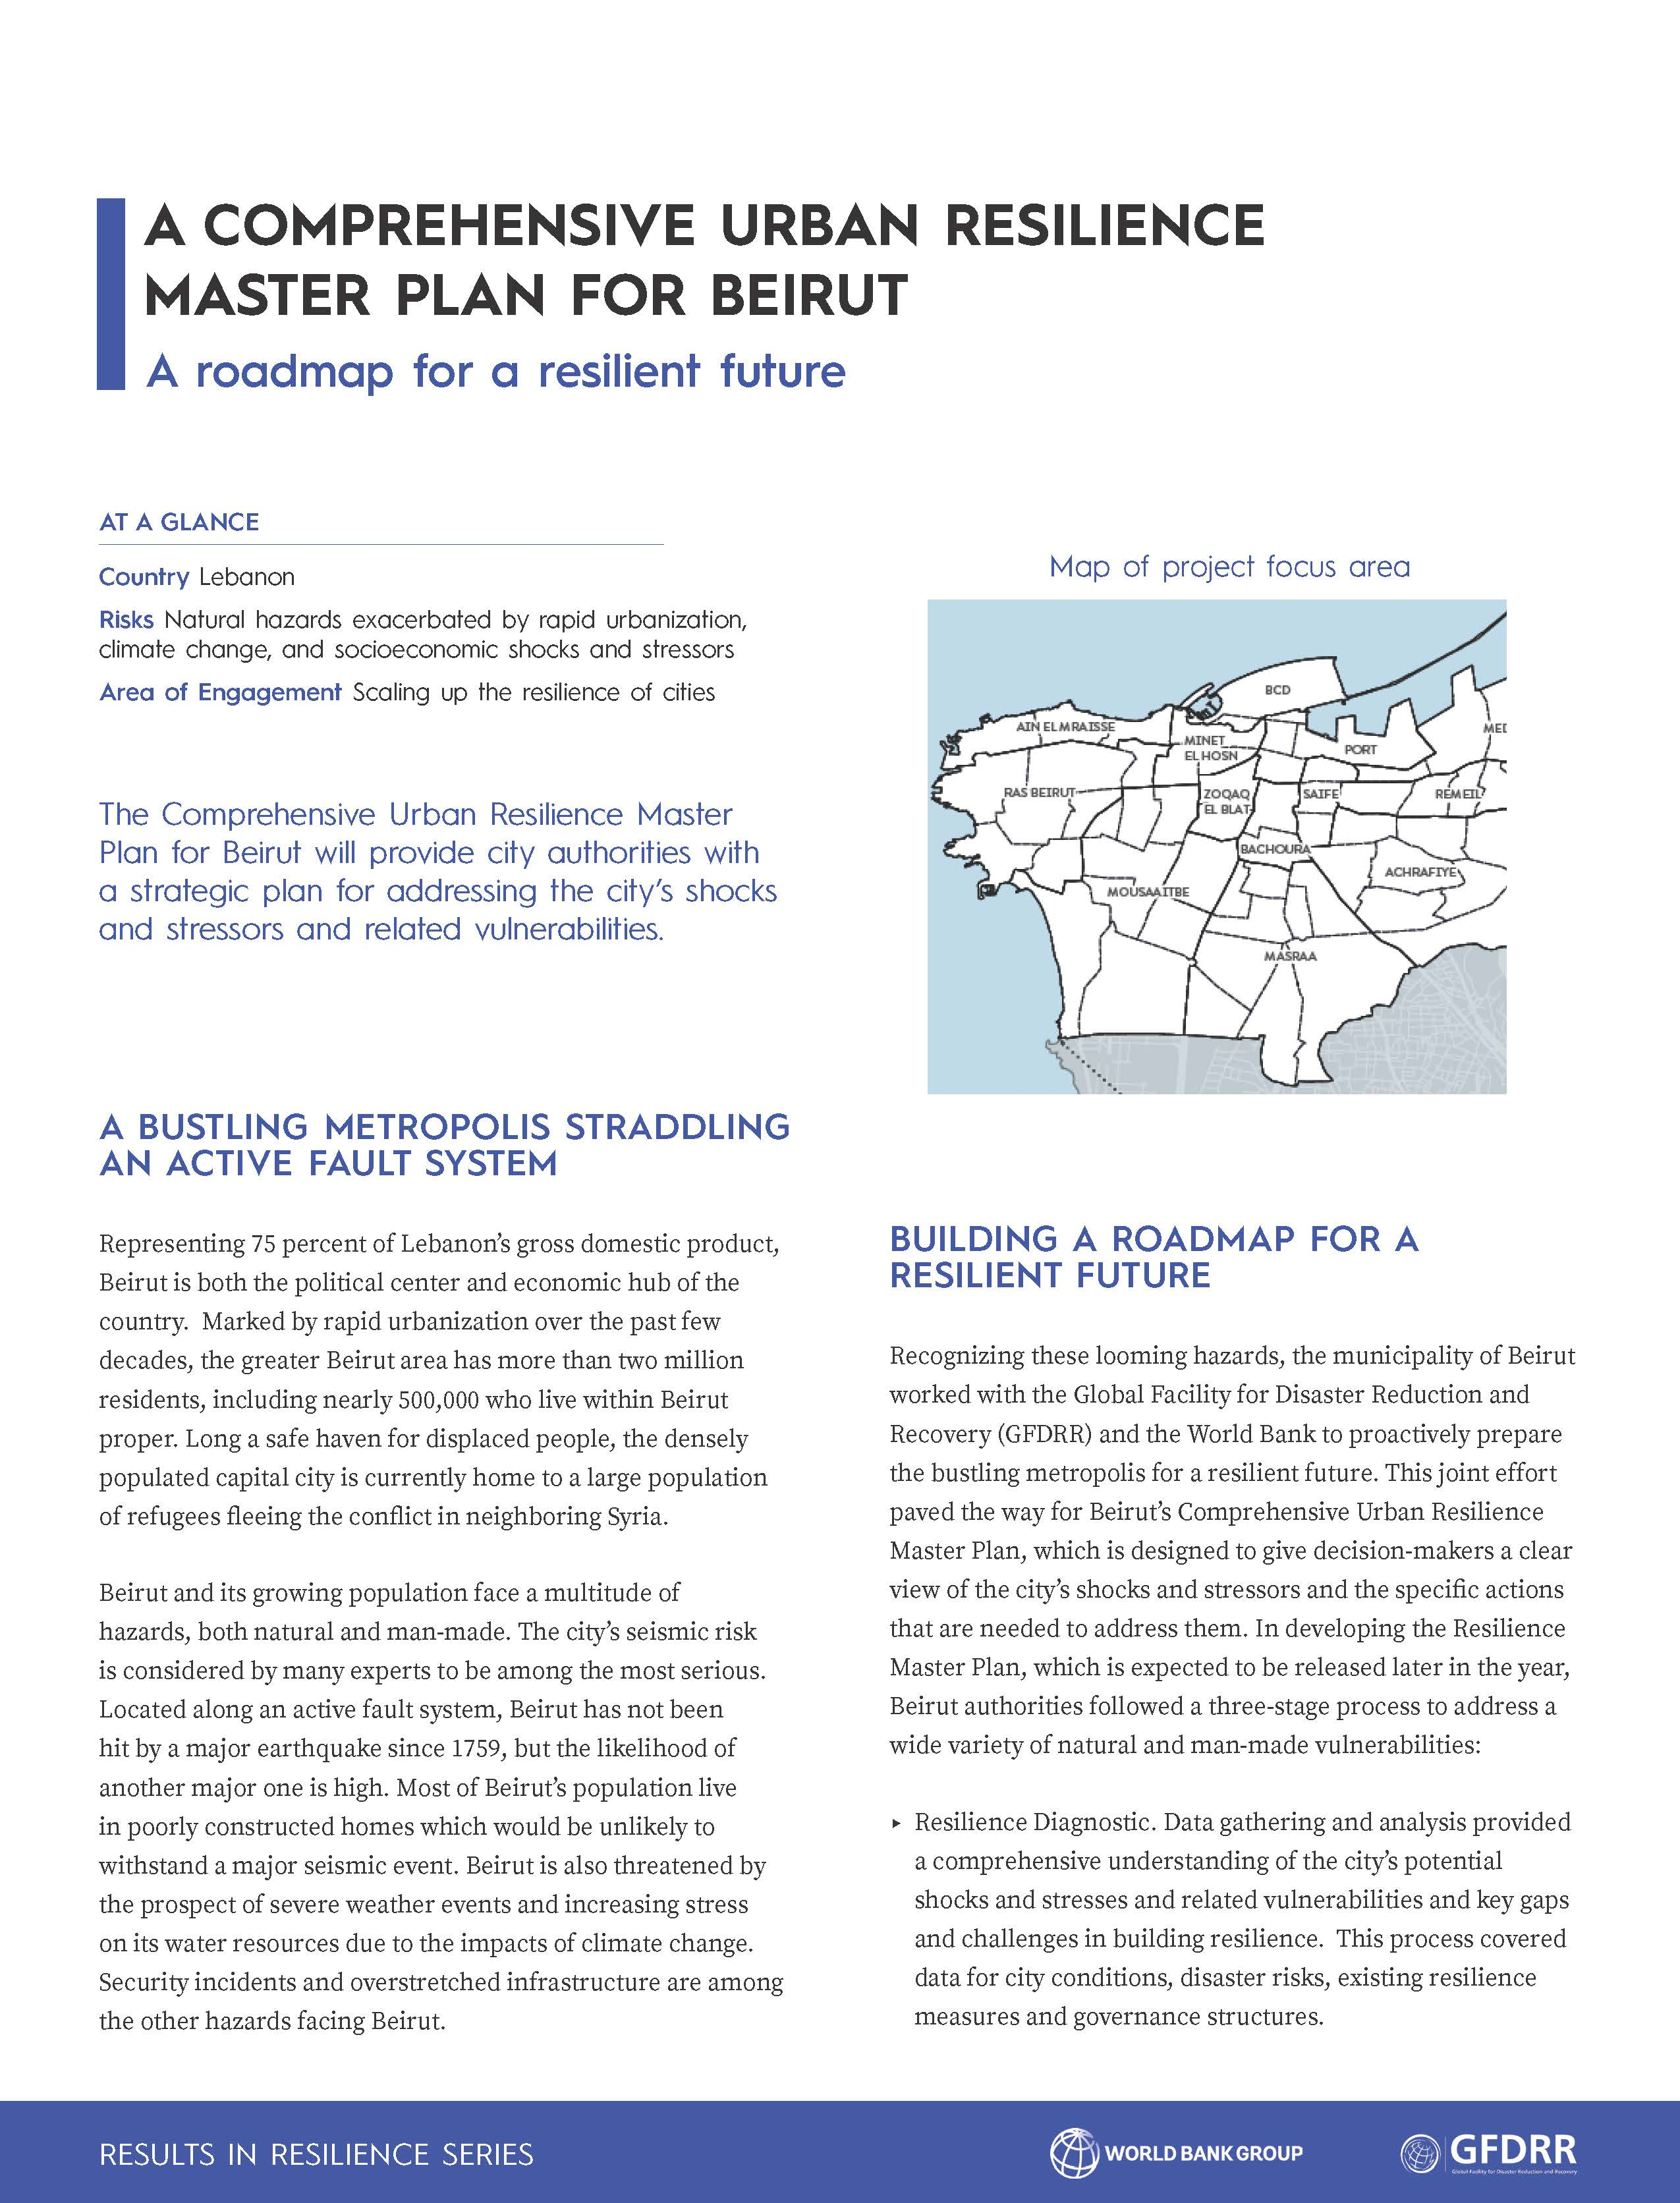 Comprehensive Urban Resilience Master Plan for Beirut